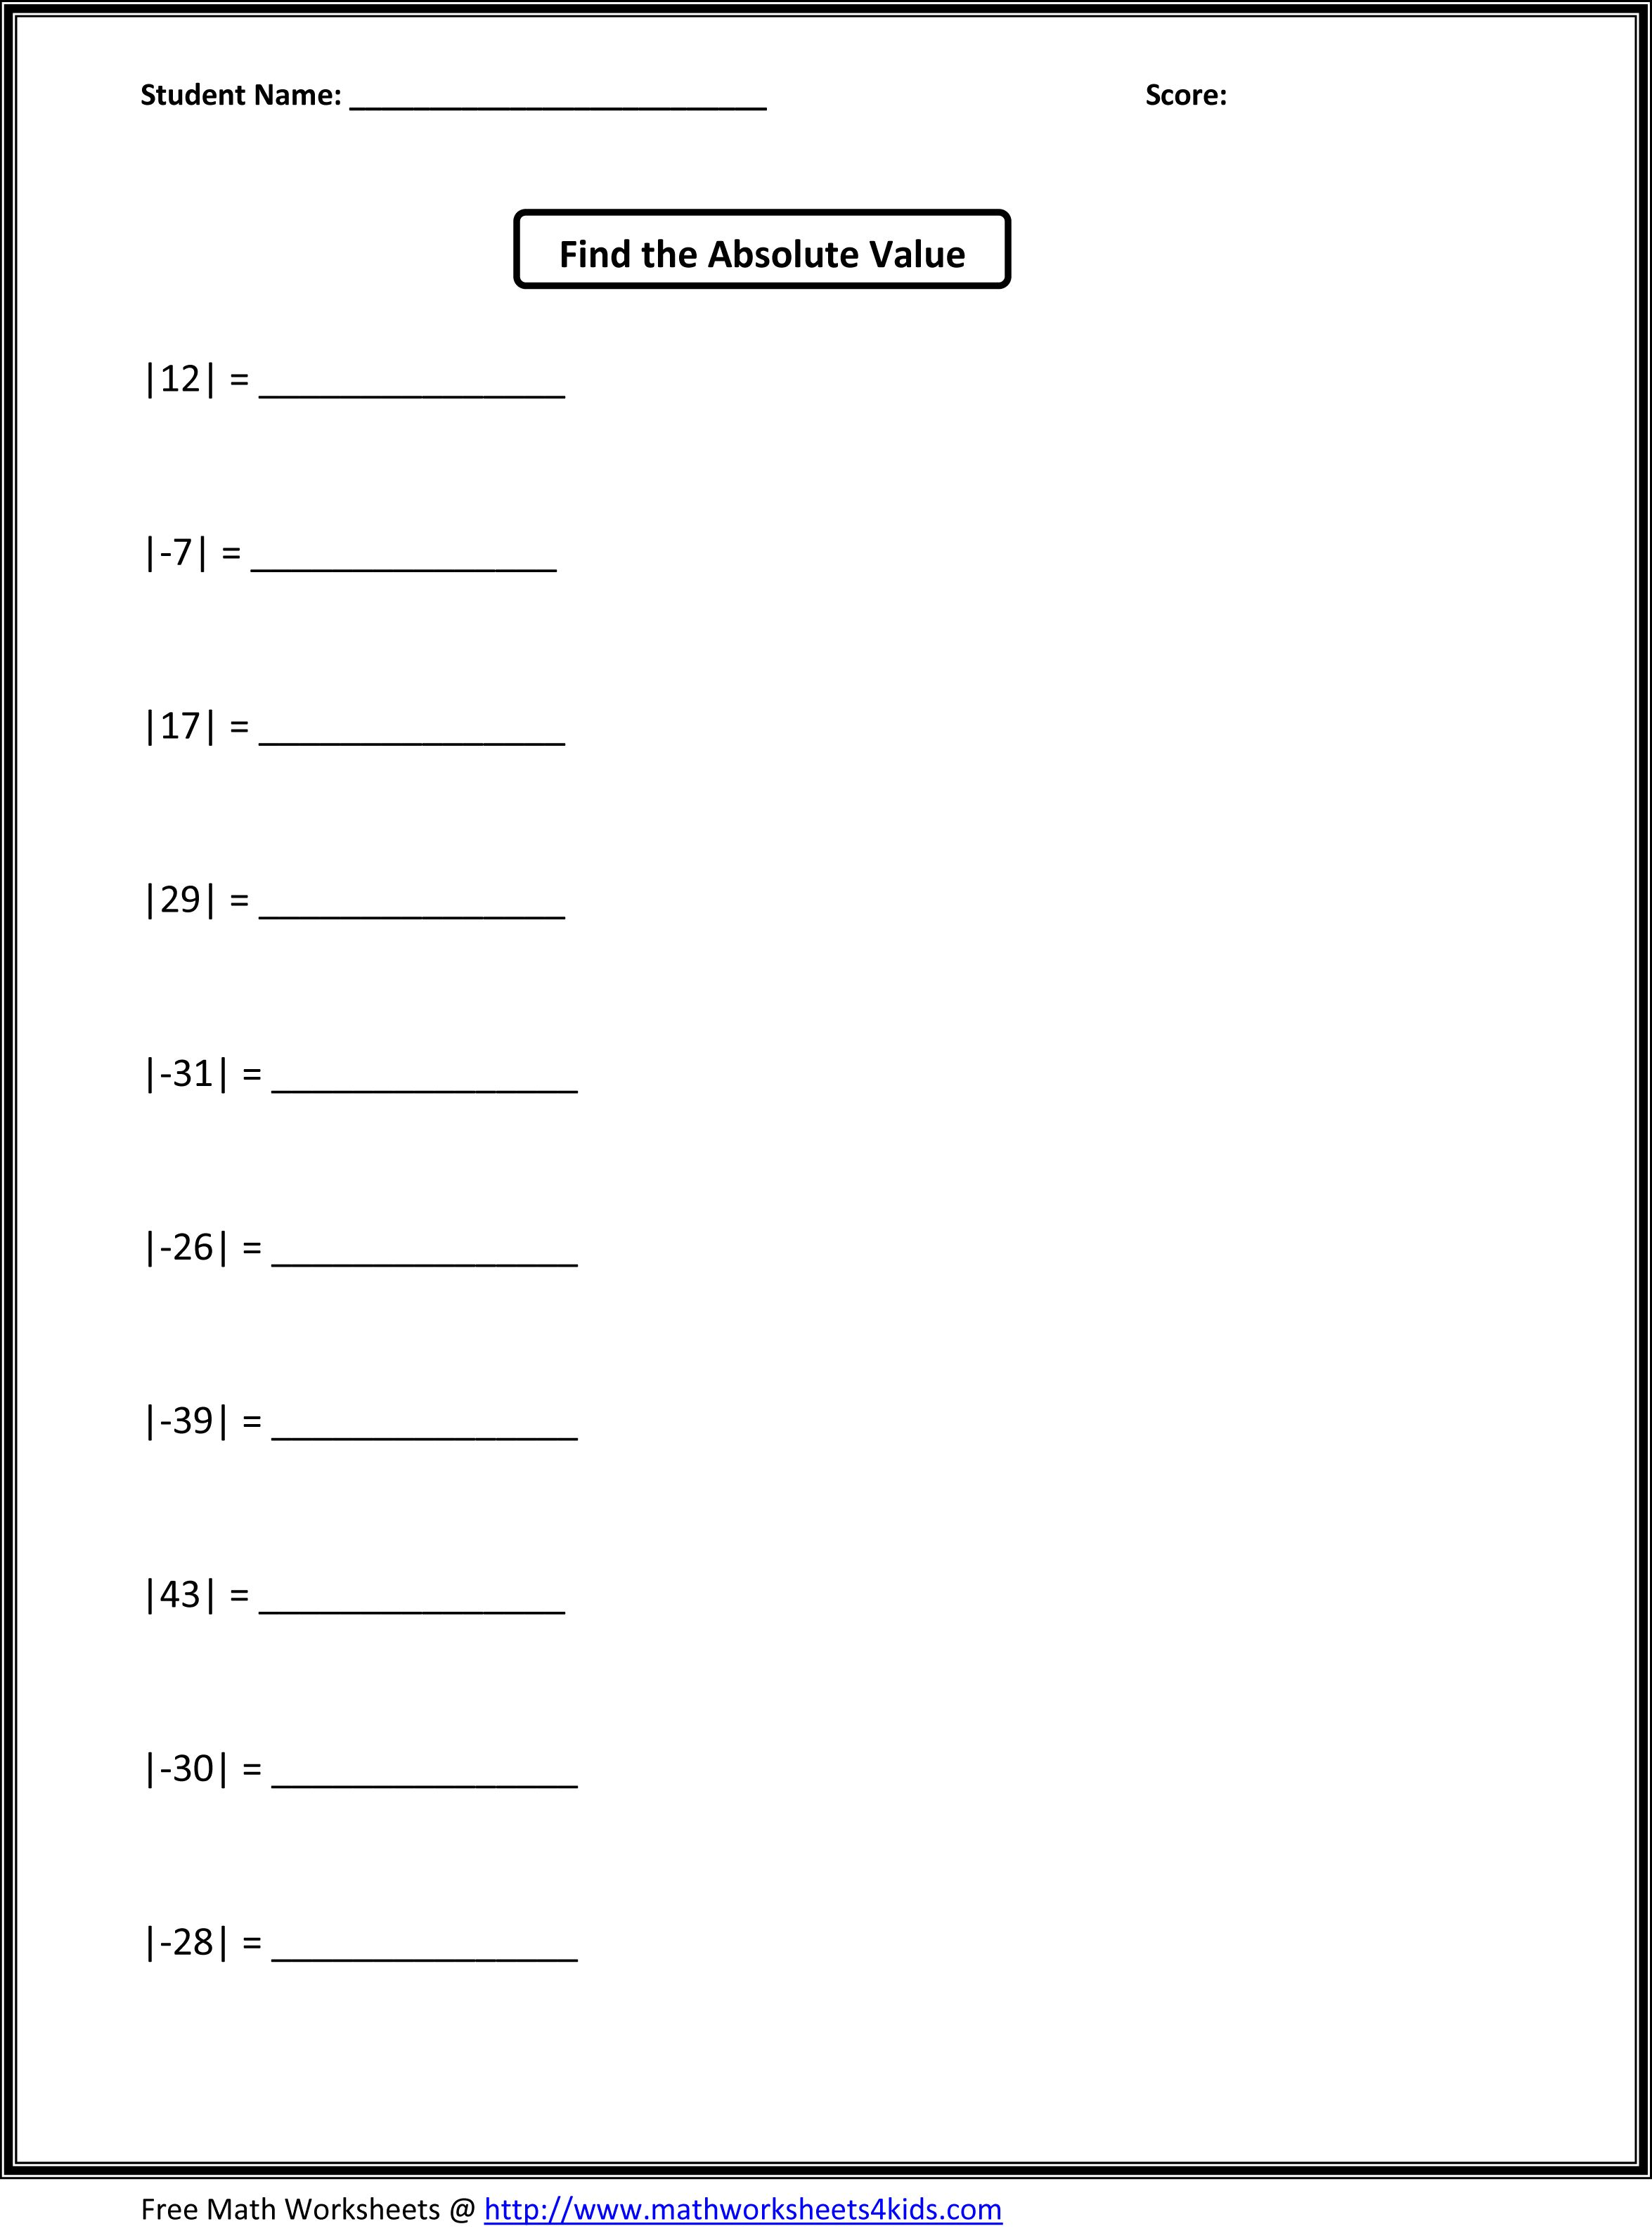 Fifth grade math worksheets Jason School ideas – Grade 5 Math Printable Worksheets